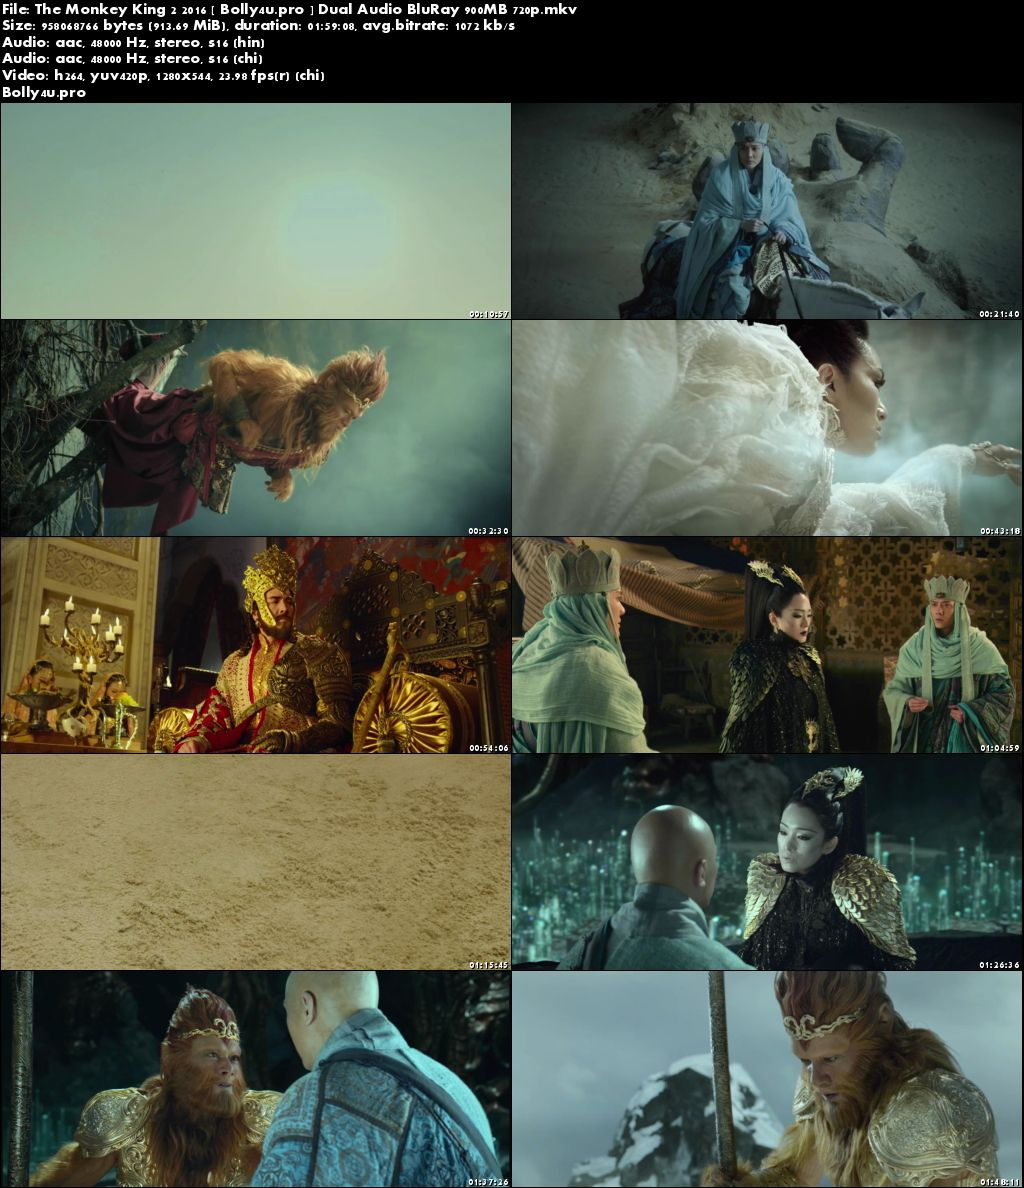 The Monkey King 2 2016 BRRip 900MB Hindi Dual Audio 720p Download